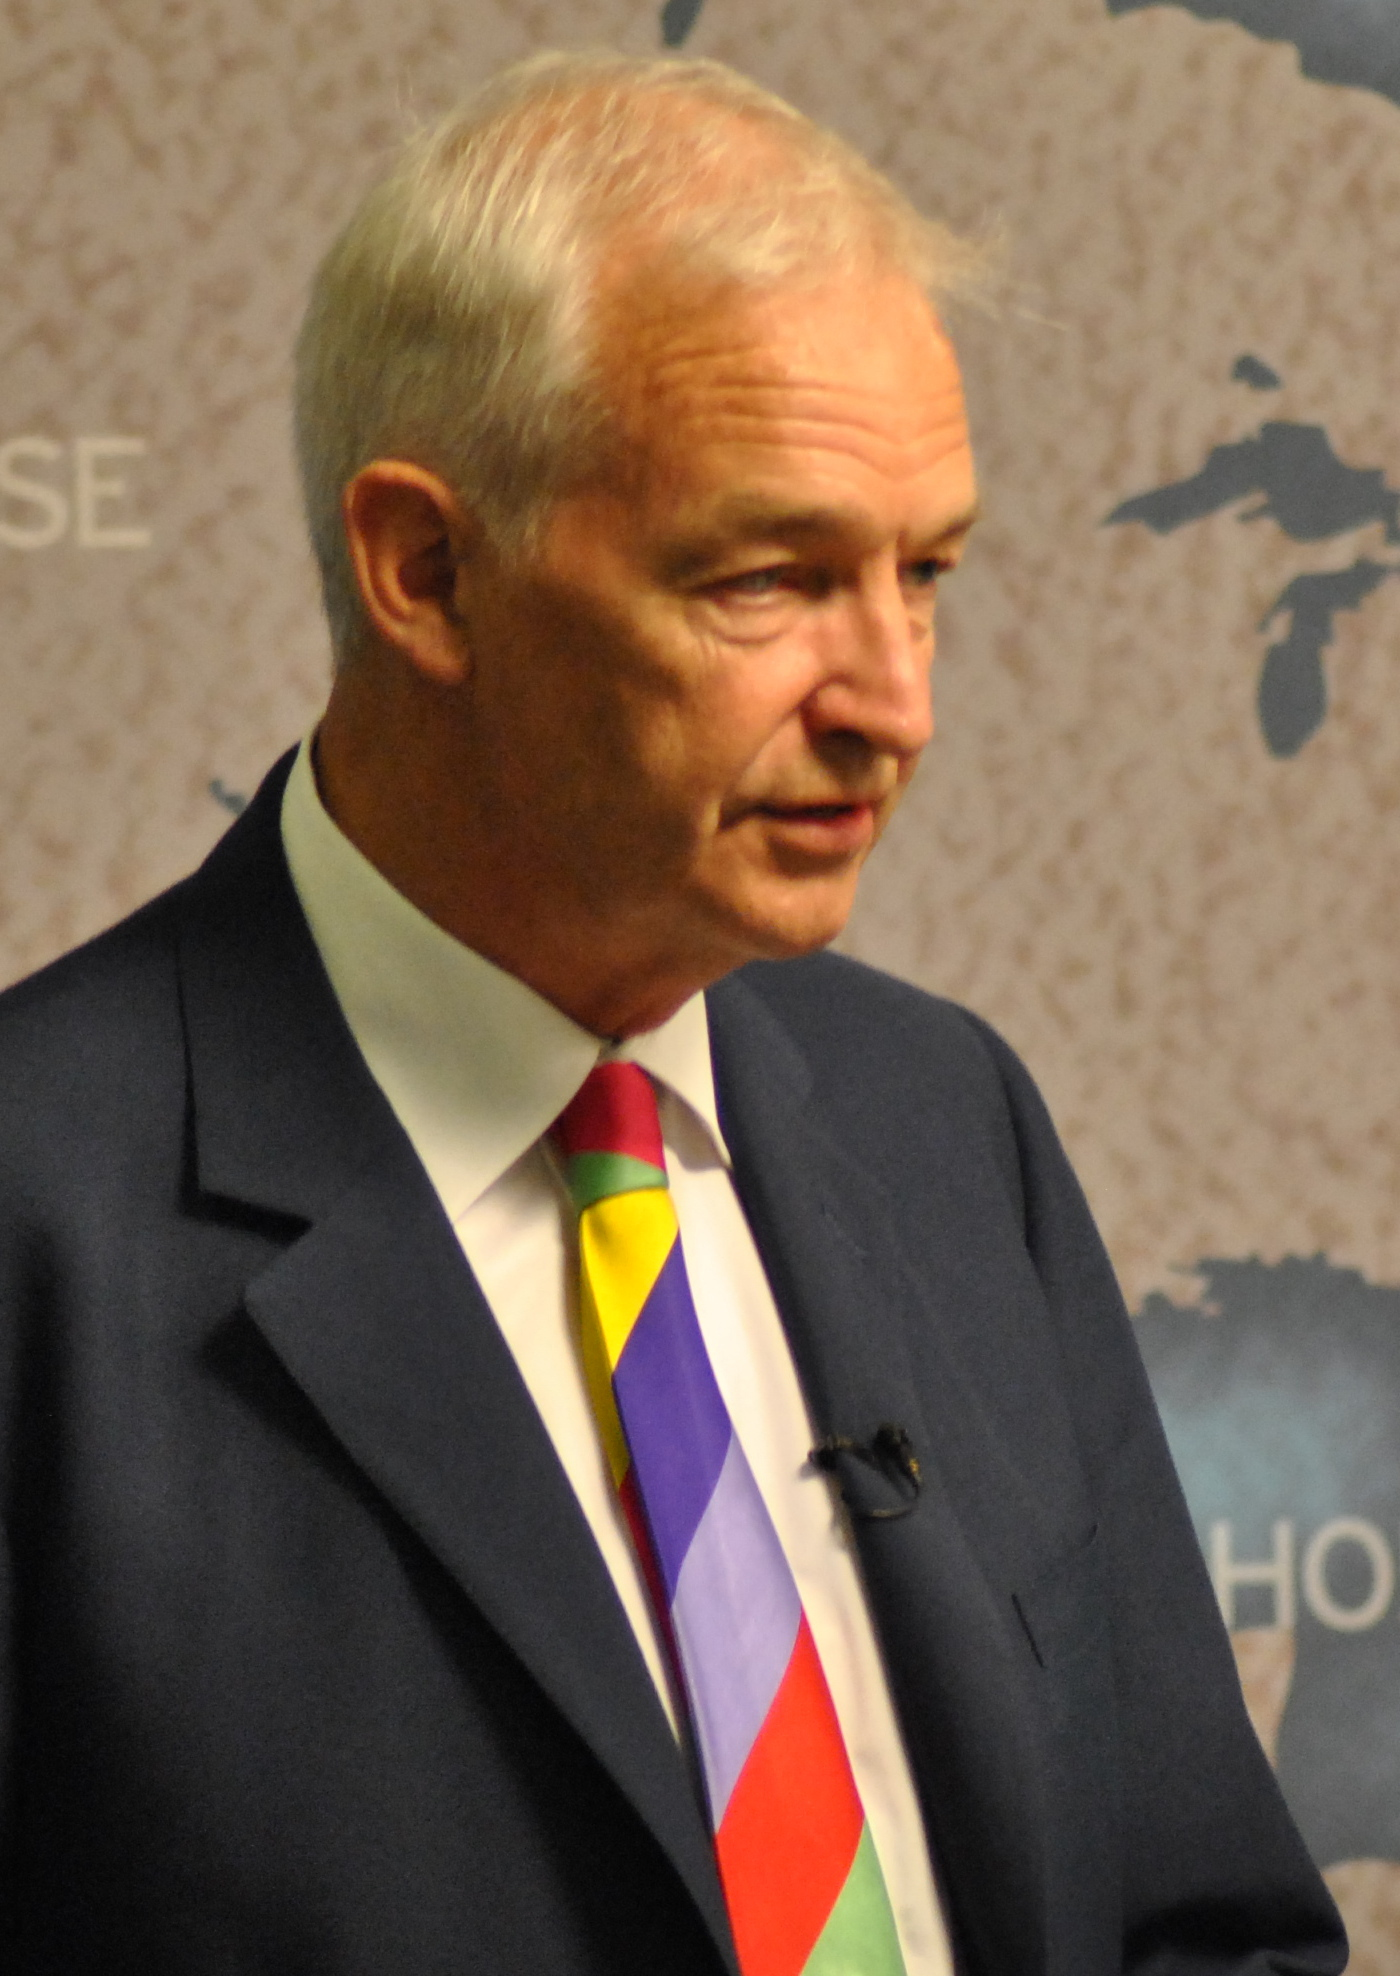 Snow speaking at [[Chatham House]] in 2011